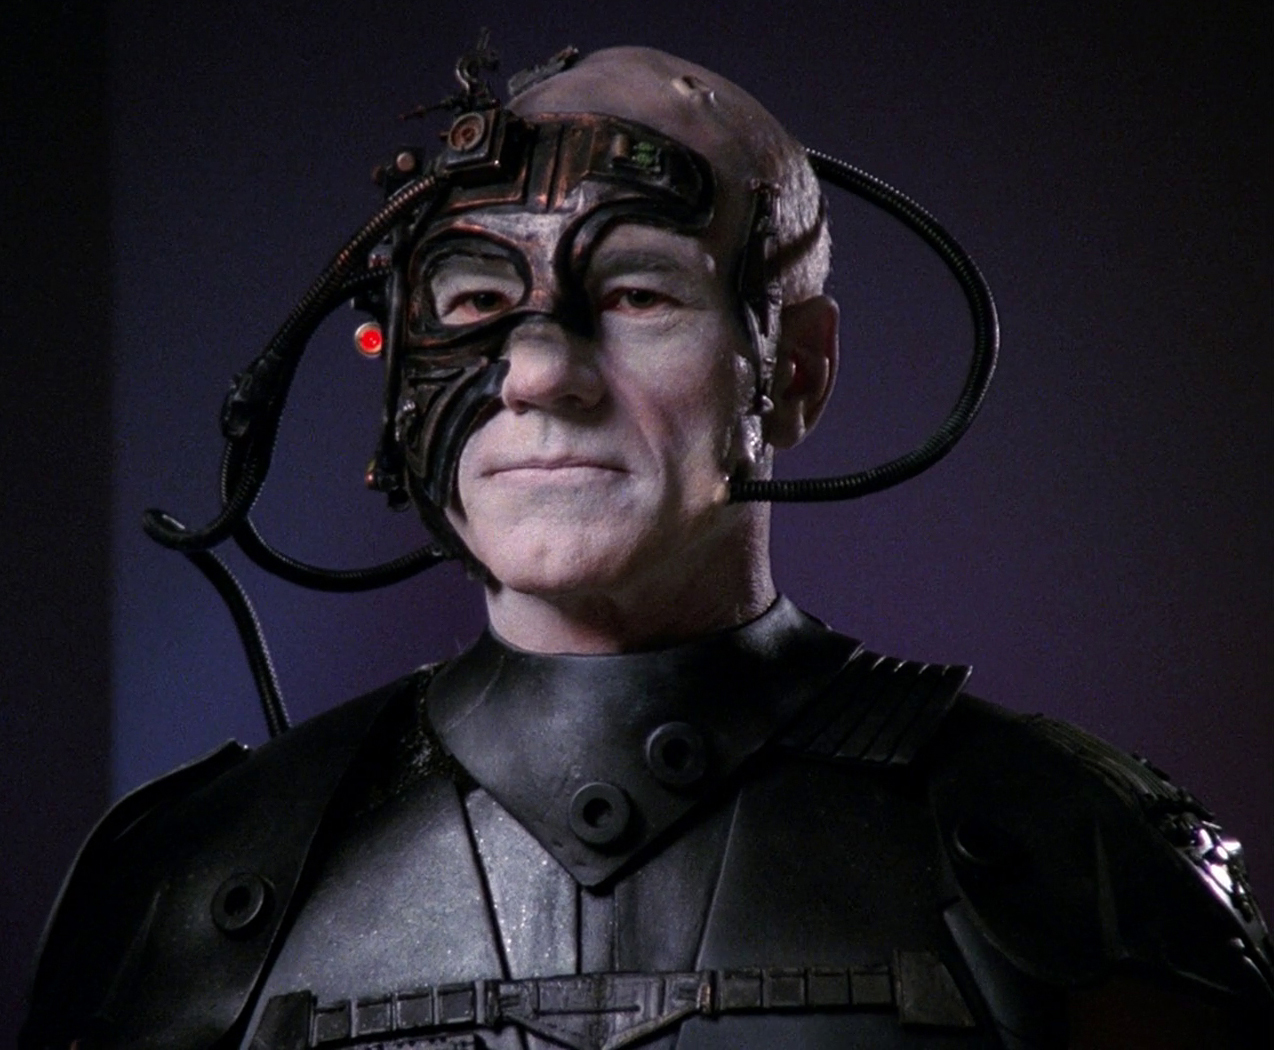 Jean-Luc Picard as Locutus of Borg in 2367 (Star Trek: The Next Generation)